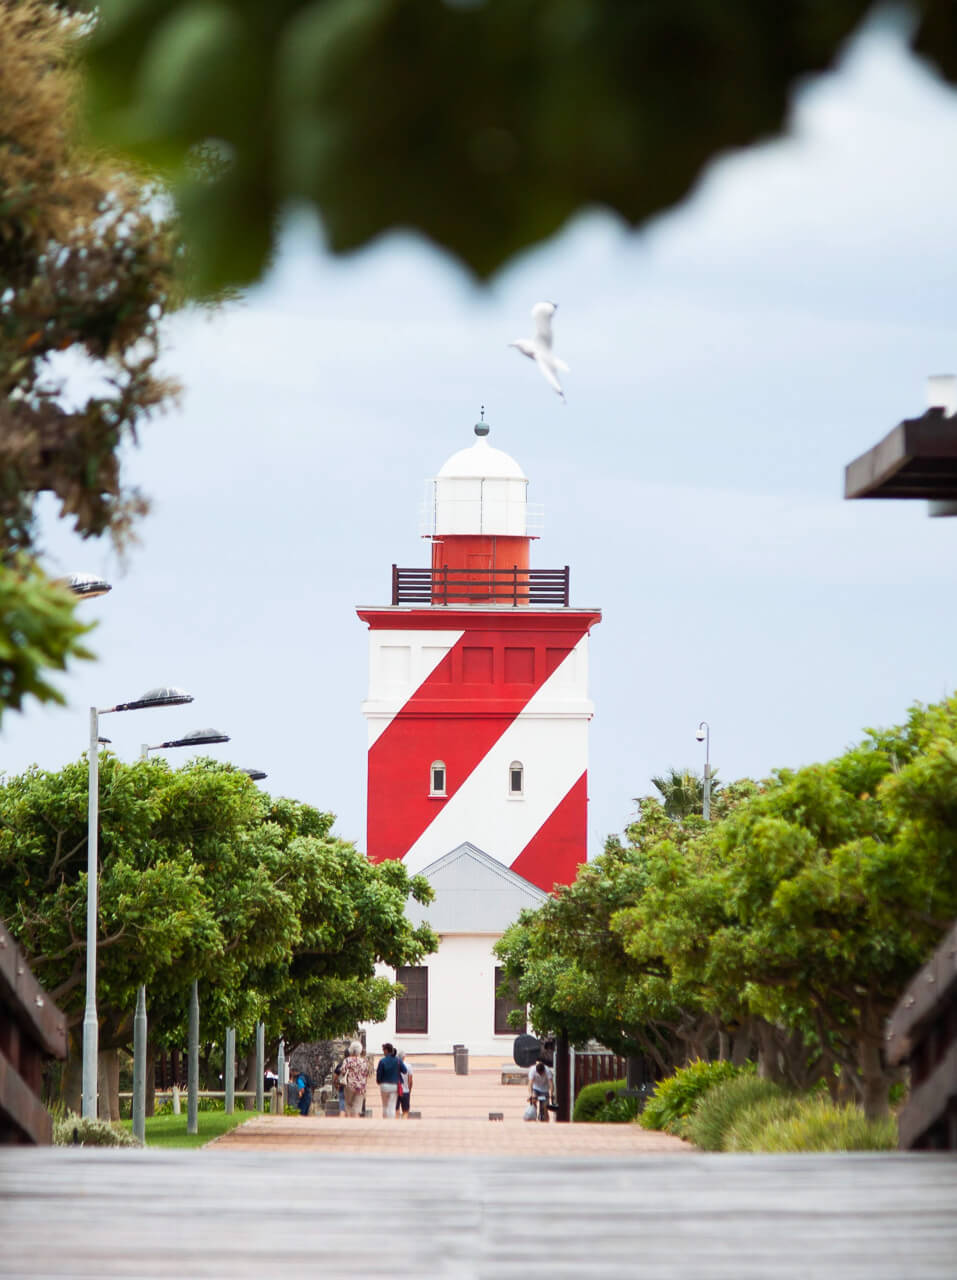 Things to do in Cape Town - go for a run around Green Point Park